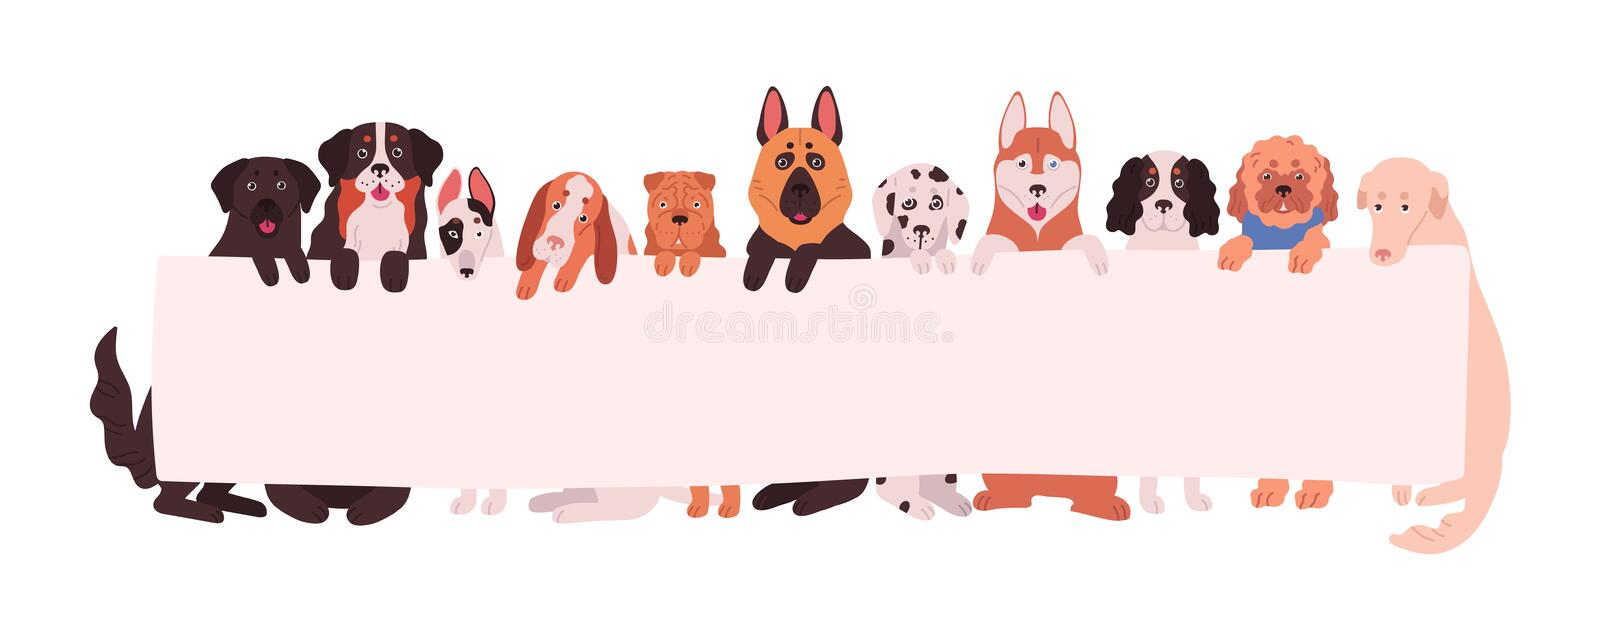 Group of adorable dogs of different breeds holding empty banner with place for text. Amusing domestic animals or pets. With placard isolated on white background stock illustration